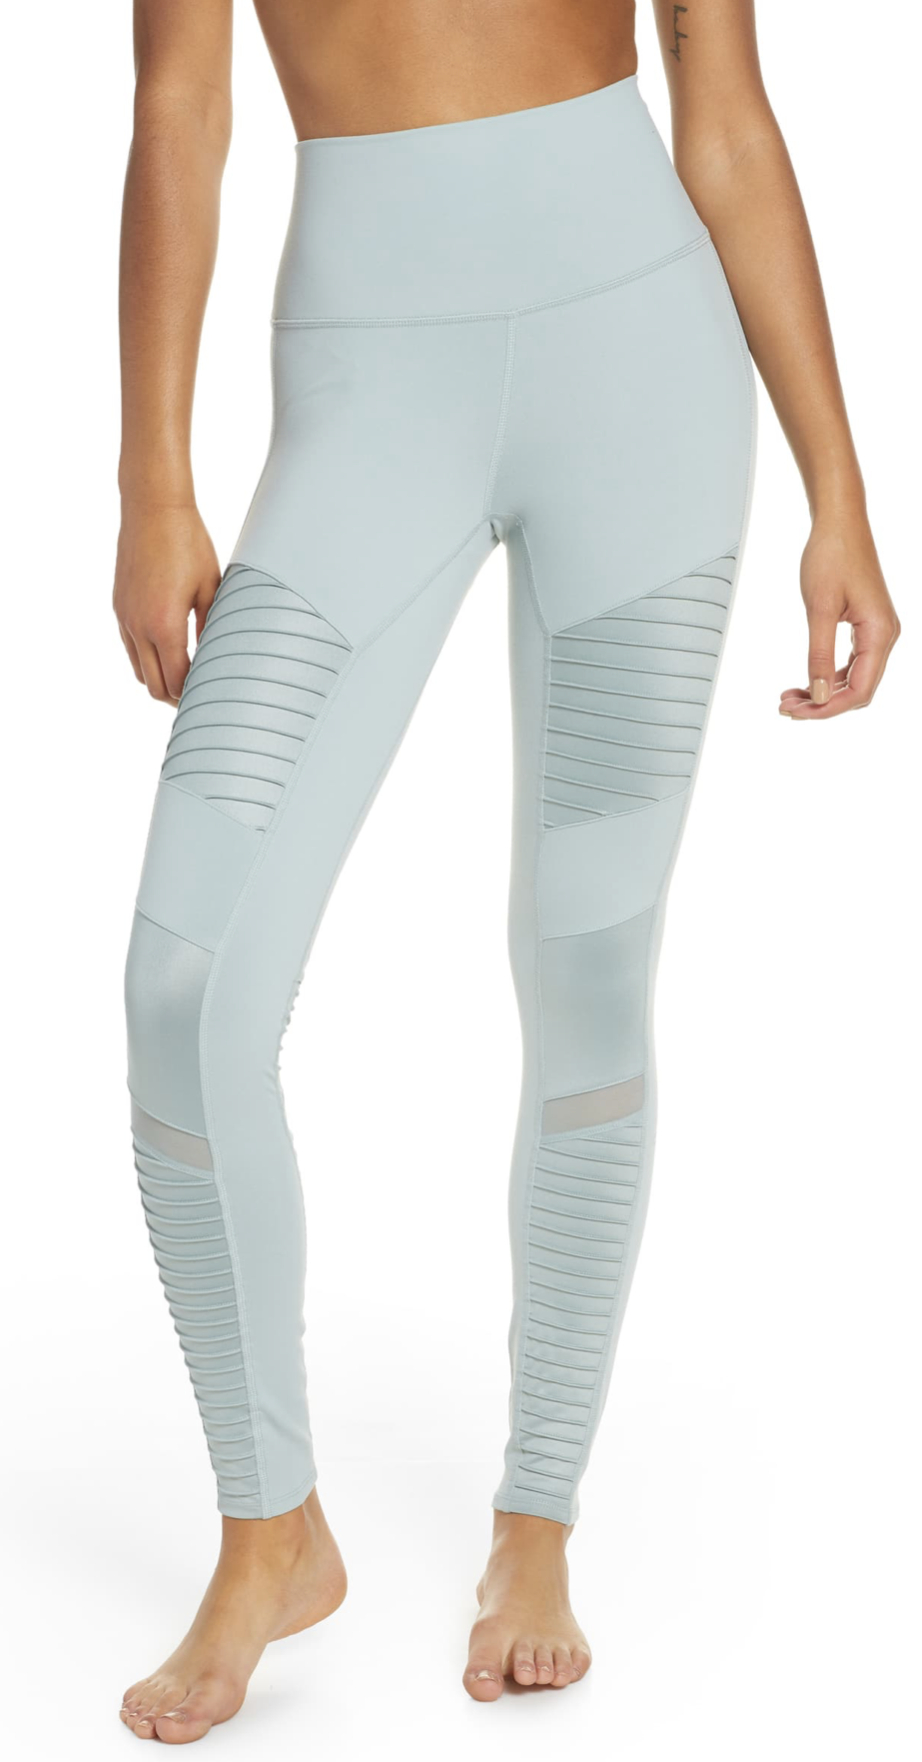 Alo High Waist Moto Leggings - $75.90